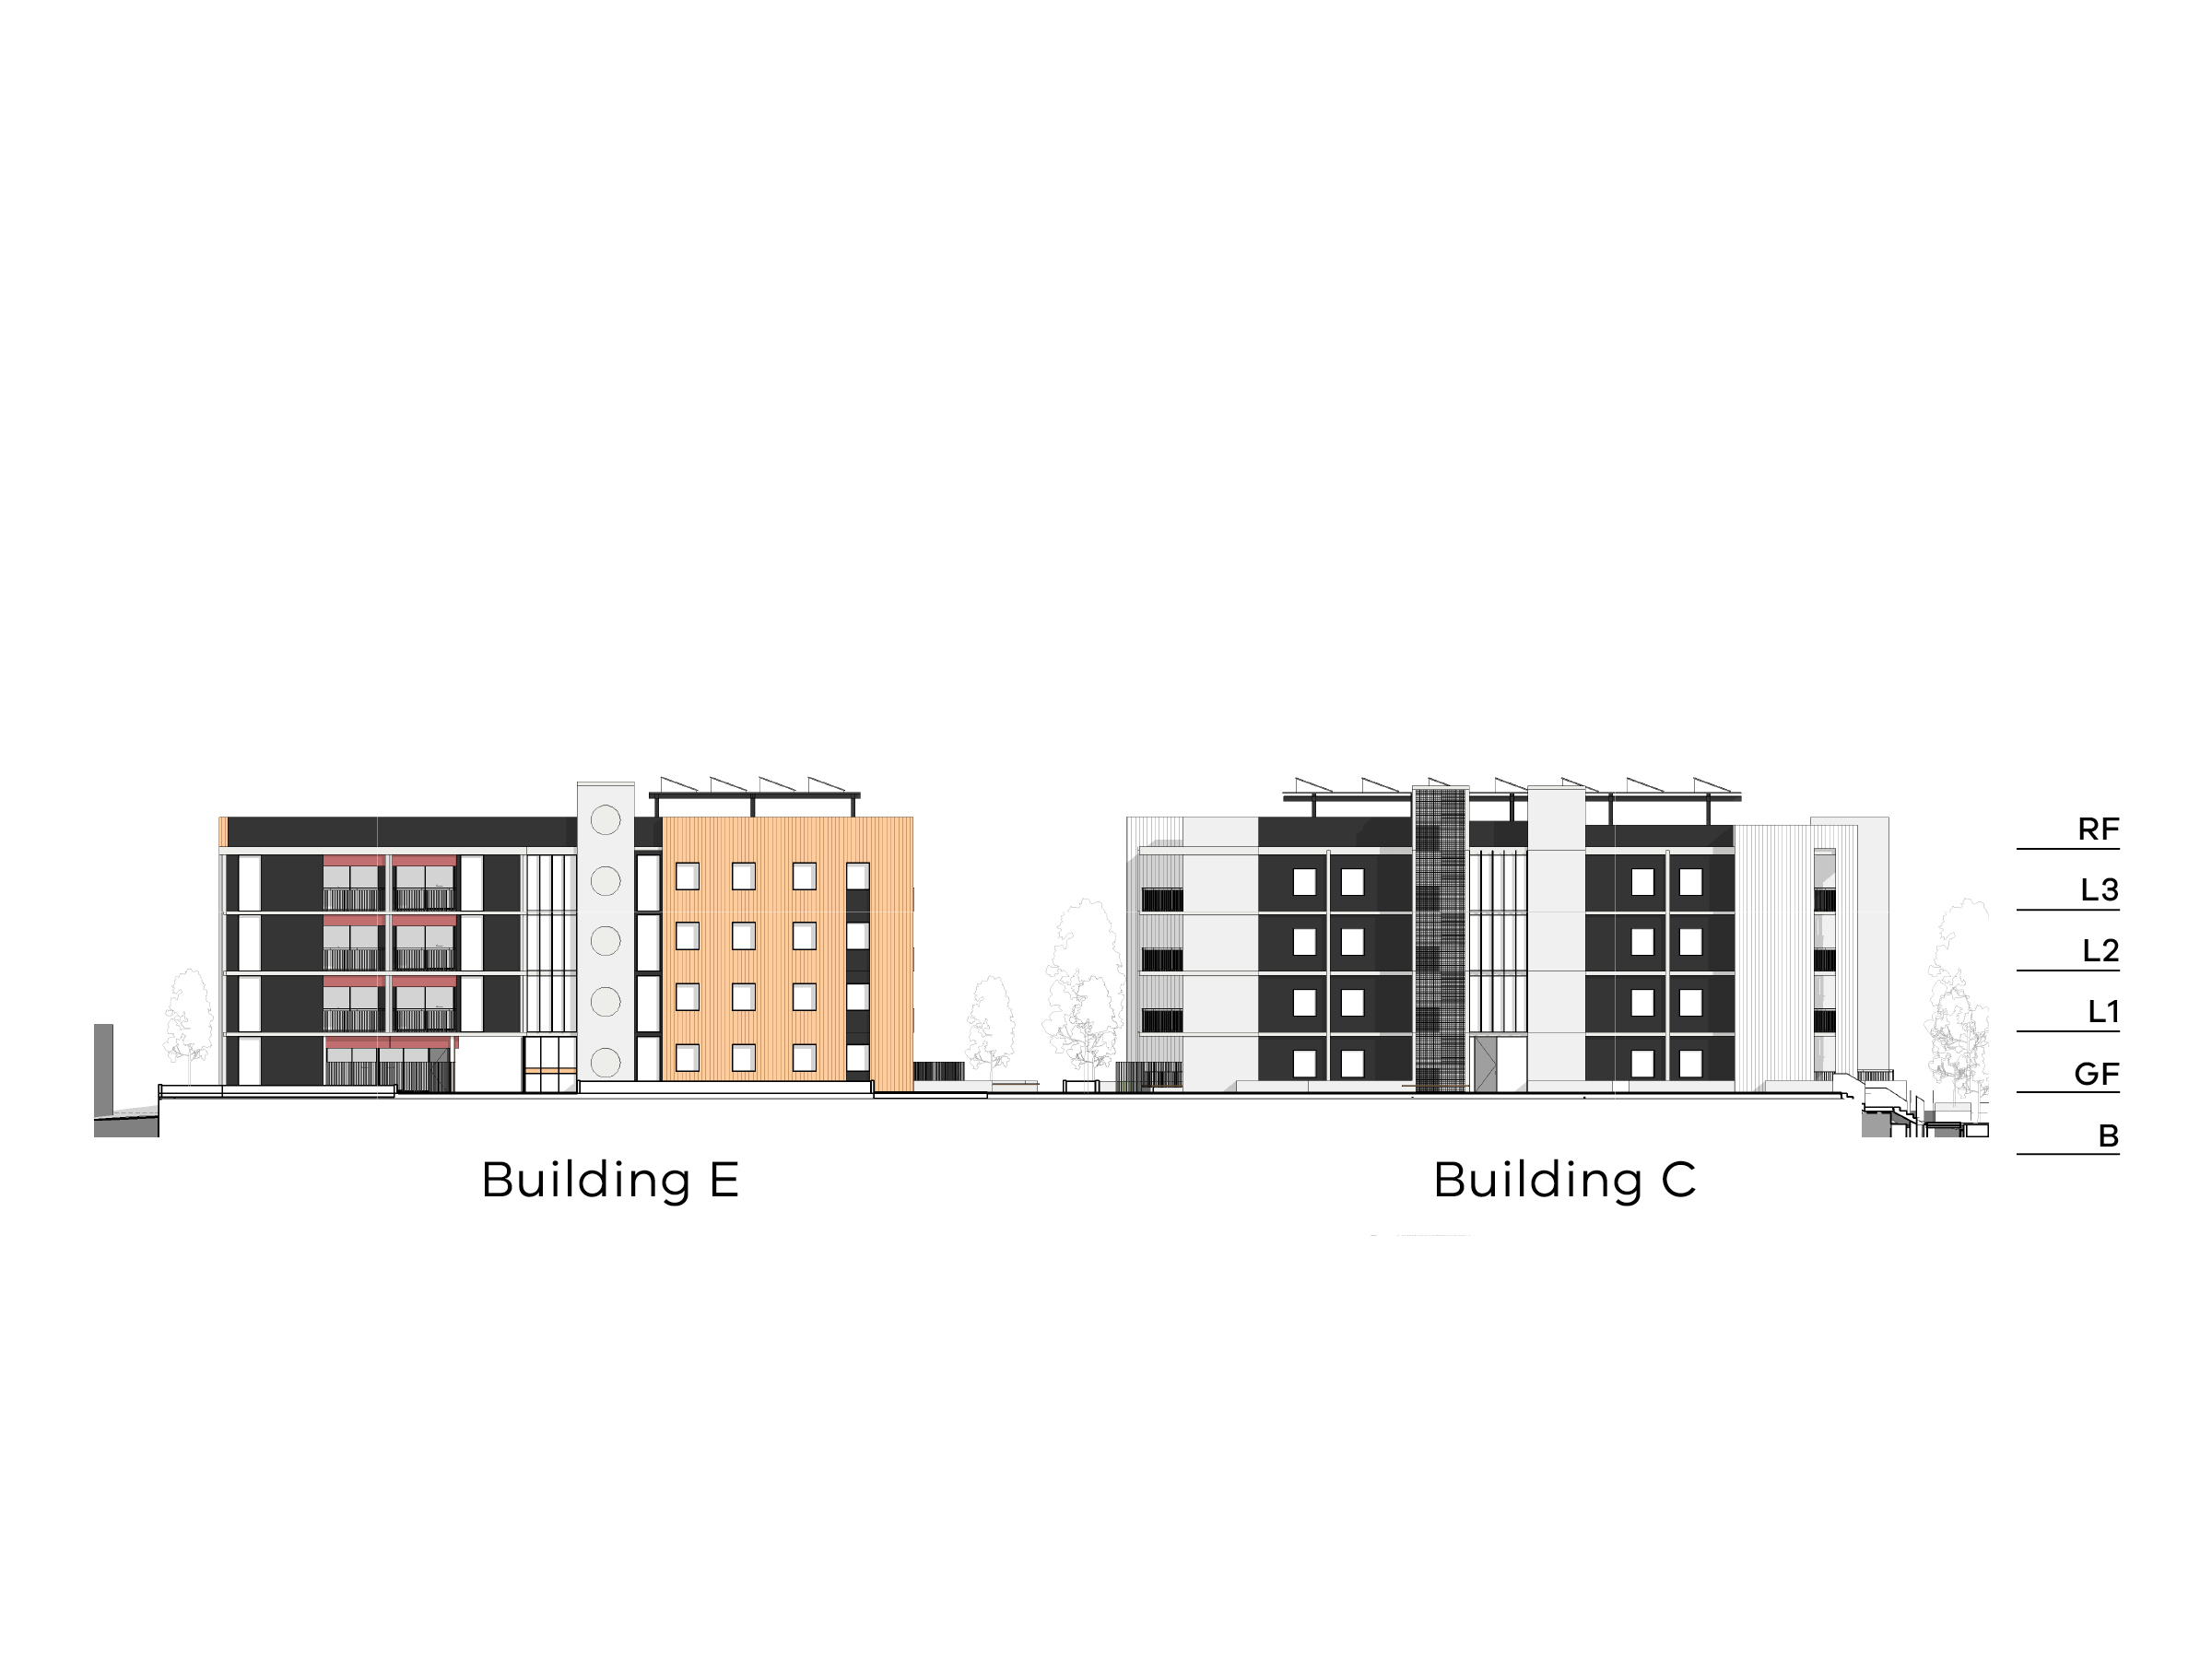 Diagram showing the heights of buildings C and E as seen from the onsite walkway looking towards Victoria Street. Buildings C and E have a basement, ground level, level 1-3 and a flat roof.